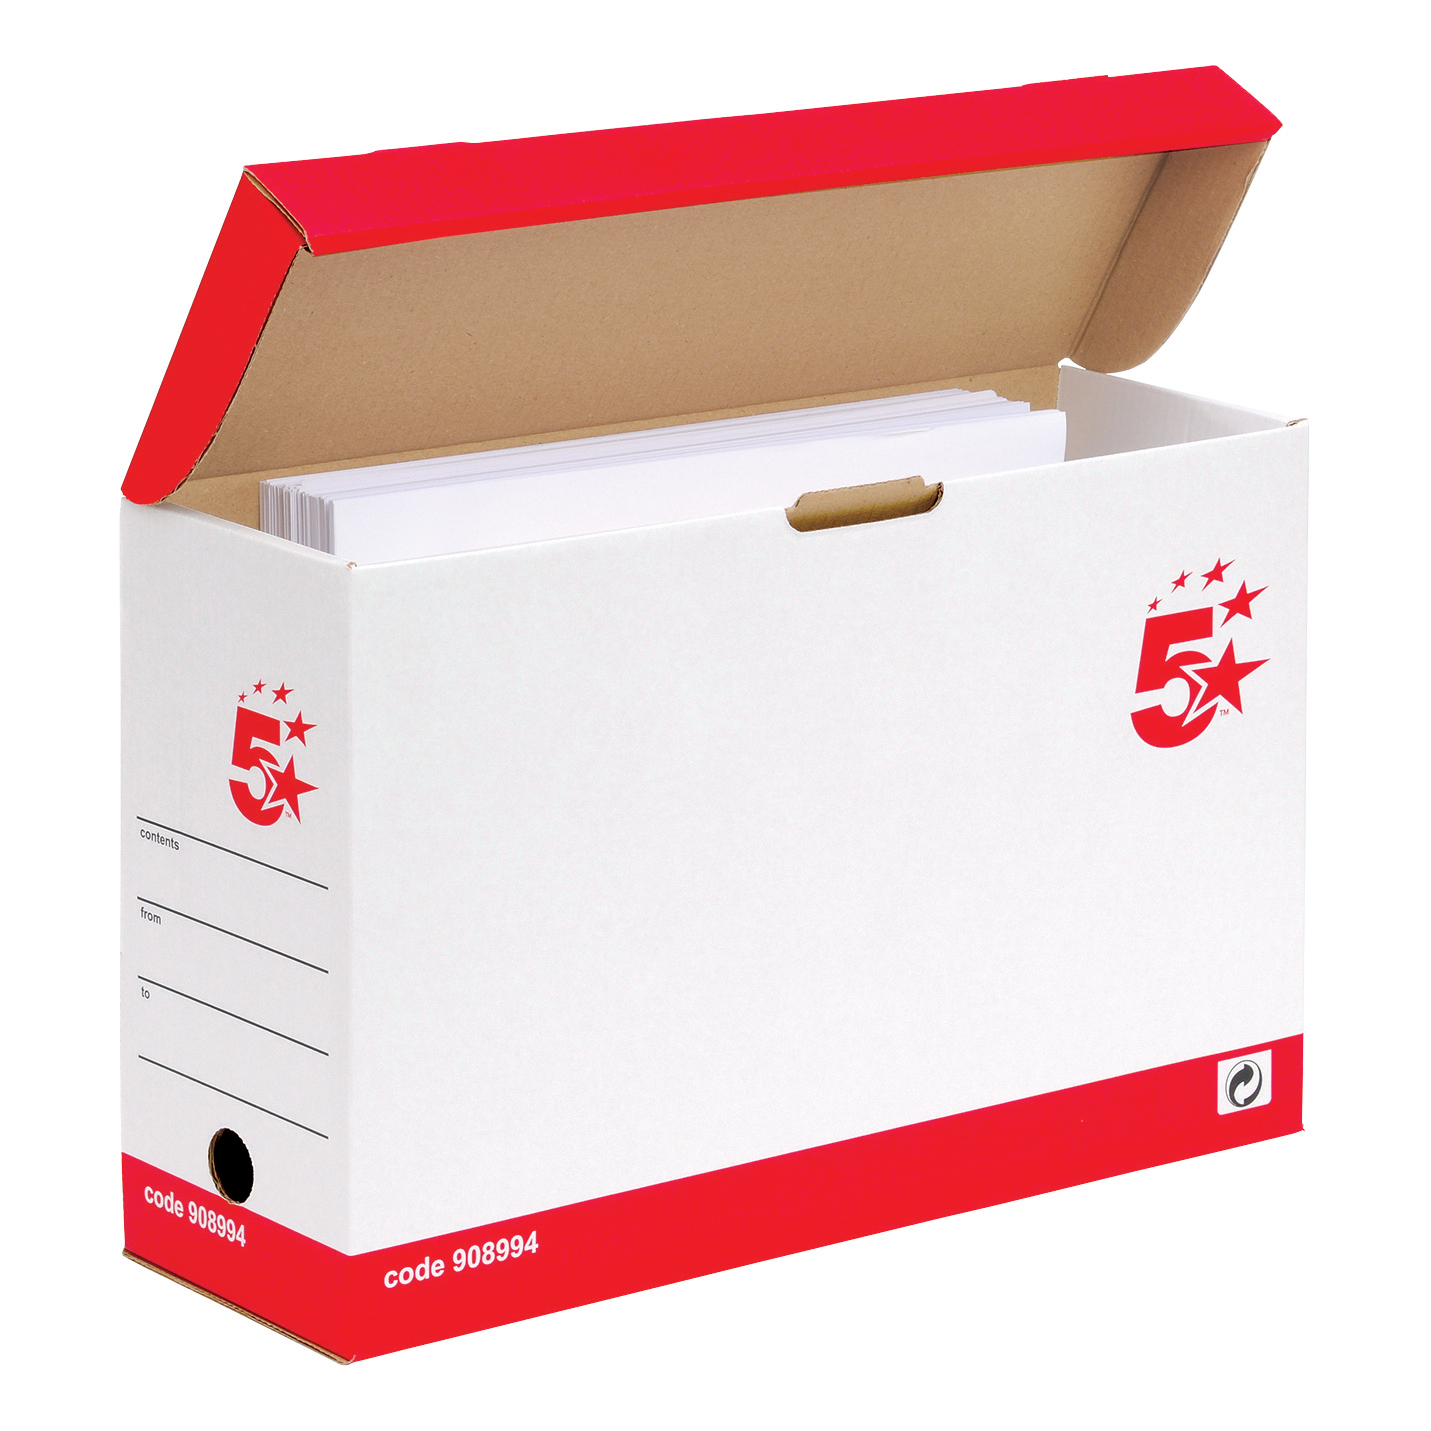 5 Star Office FSC Transfer Case Hinged Lid Foolscap Self-assembly W133xD401xH257mm Red & White [Pack 20]